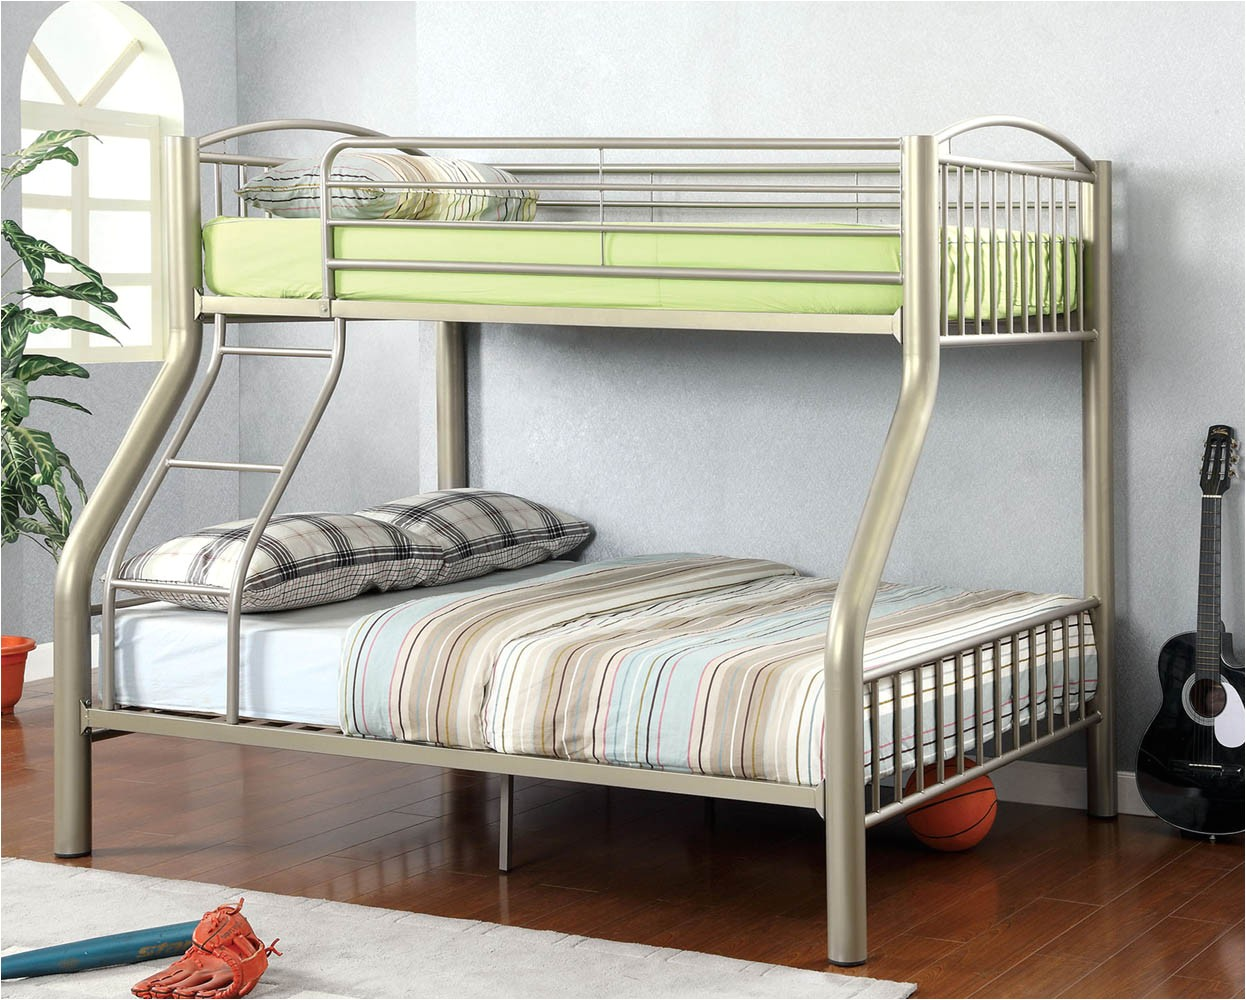 heavy duty silver twinfull metal bunk bed with mattress p 2682